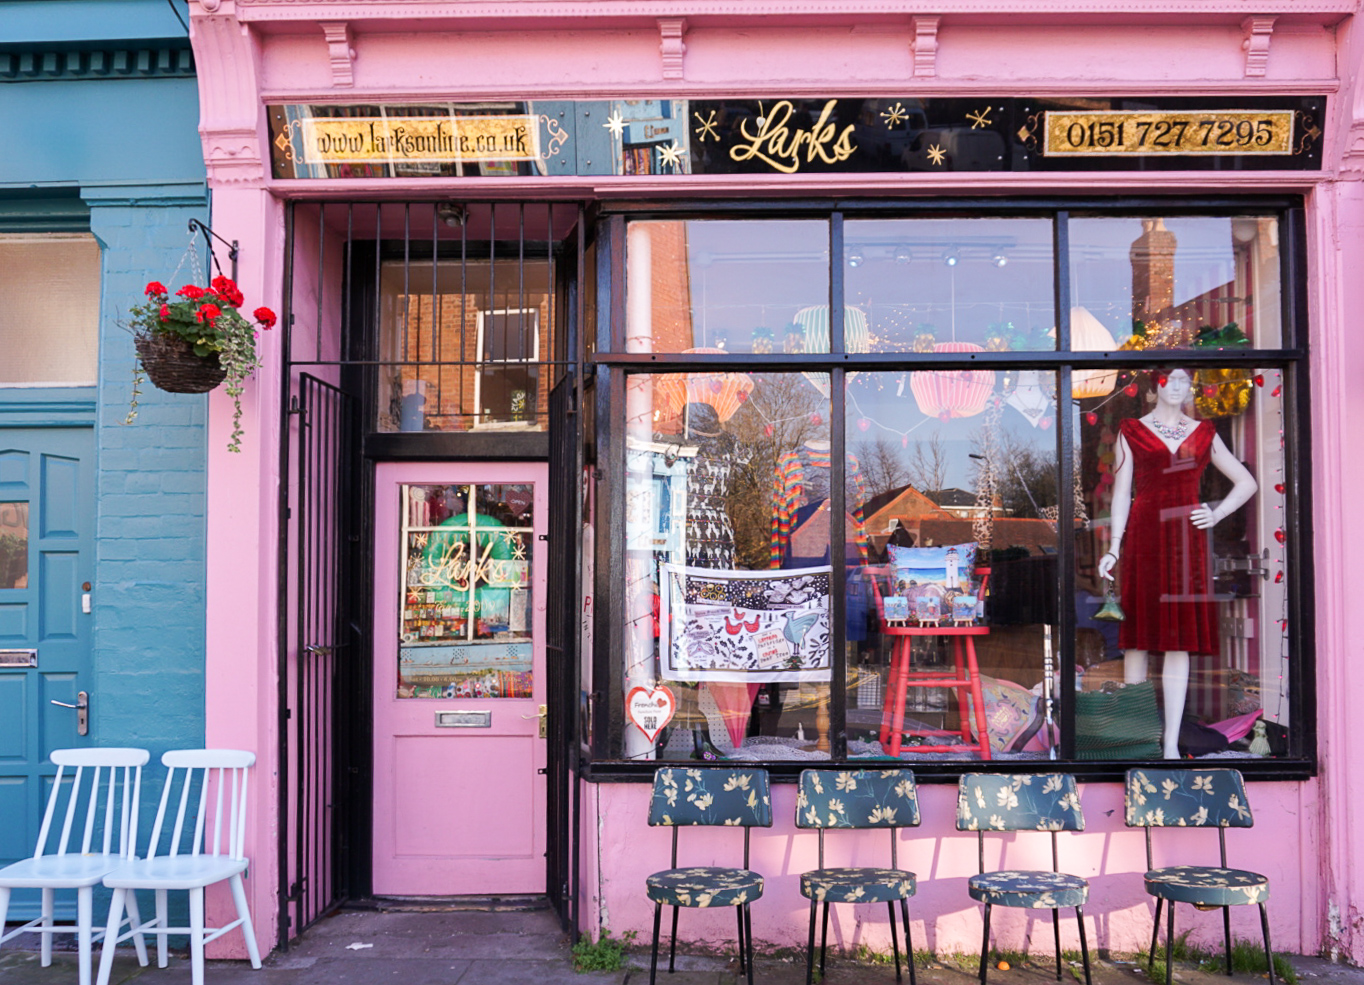 Lark's pink shop on lark lane, liverpool. where to stay in liverpool